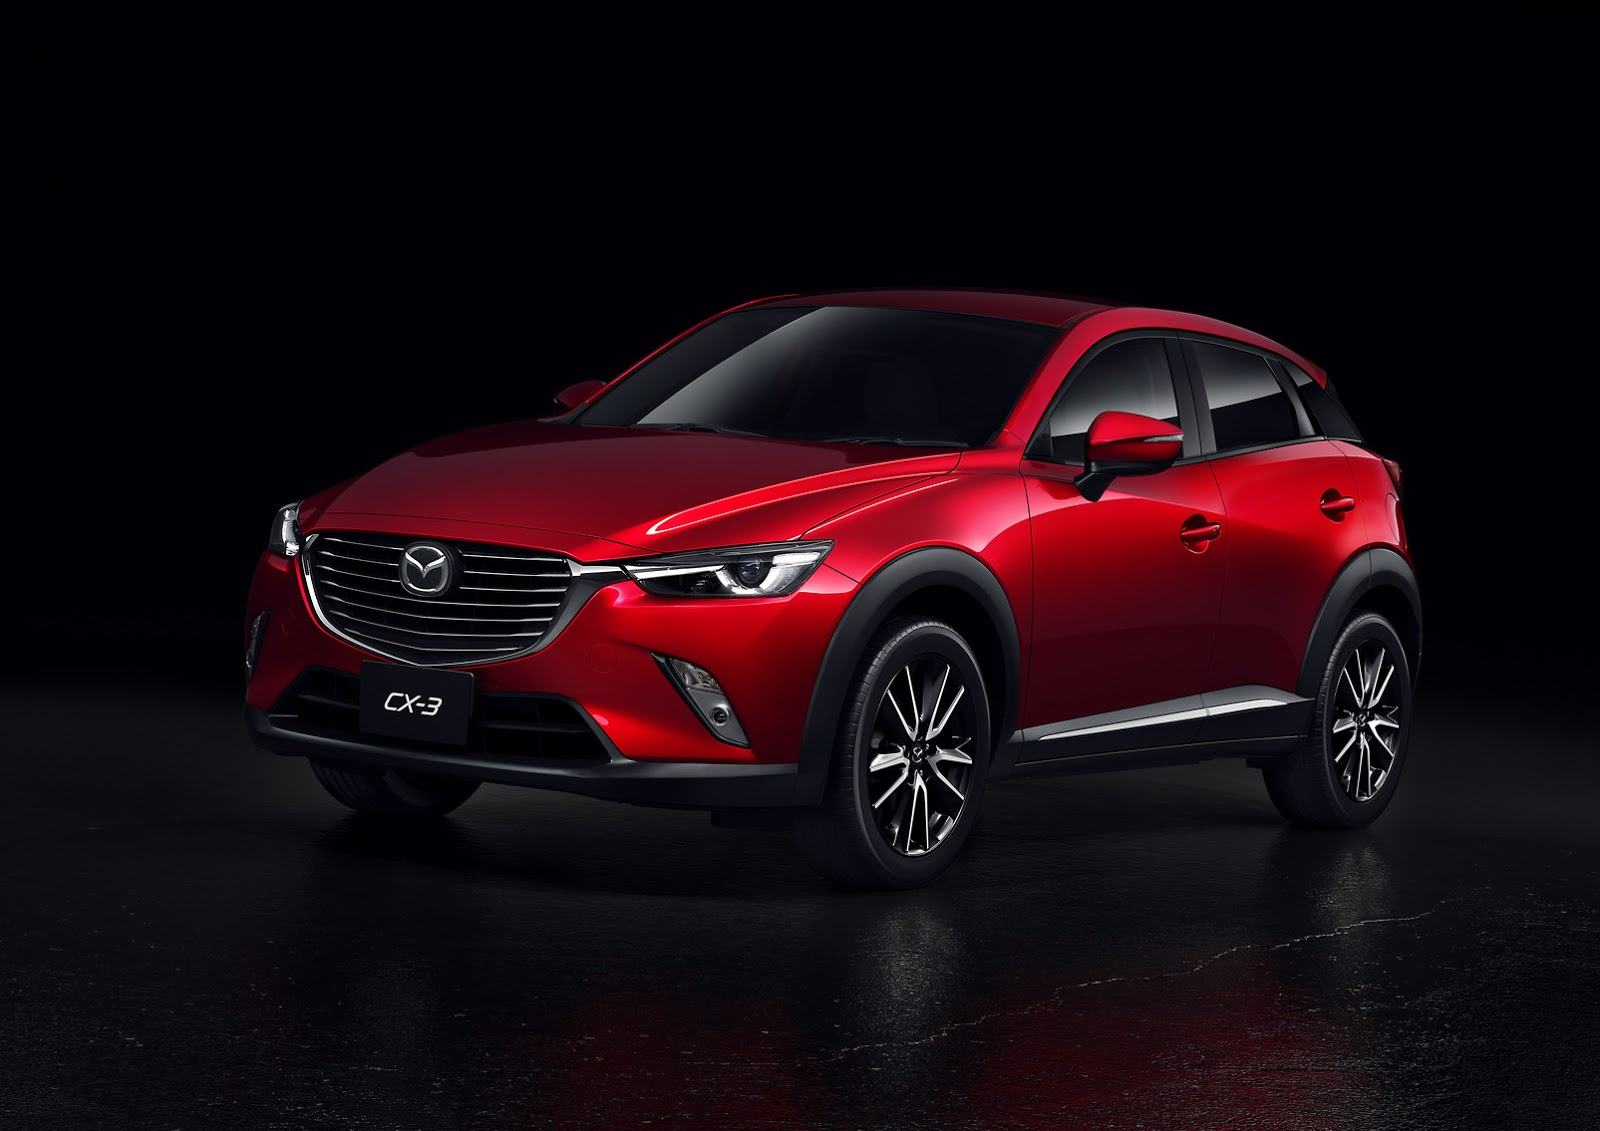 new mazda cx 3 starts from 19 960 in the usa carscoops. Black Bedroom Furniture Sets. Home Design Ideas